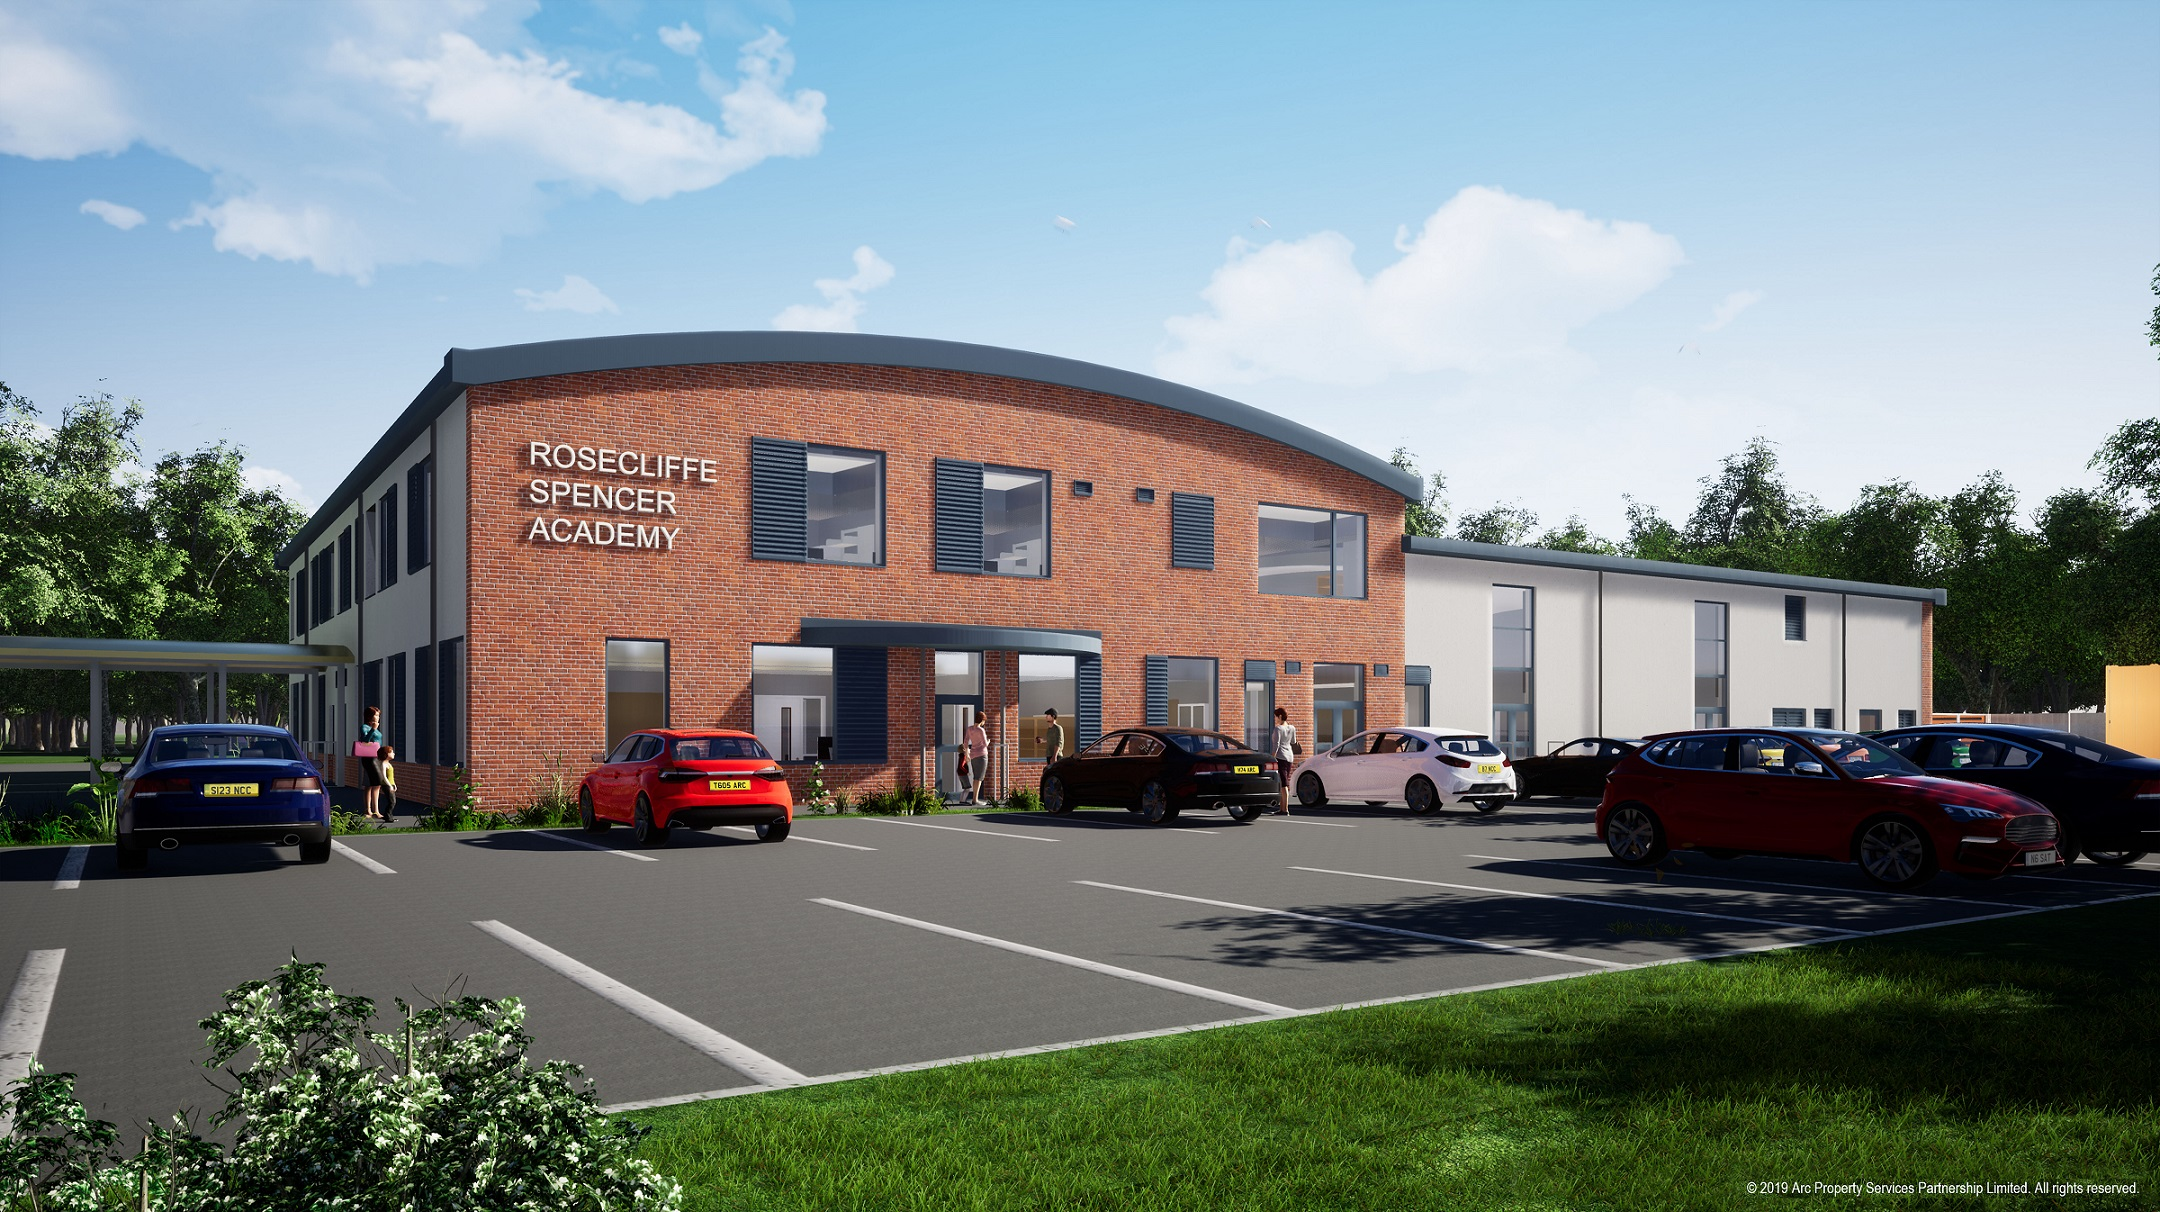 MORGAN SINDALL CONSTRUCTION BREAKS GROUND ON £8 MILLION ROSECLIFFE SPENCER ACADEMY